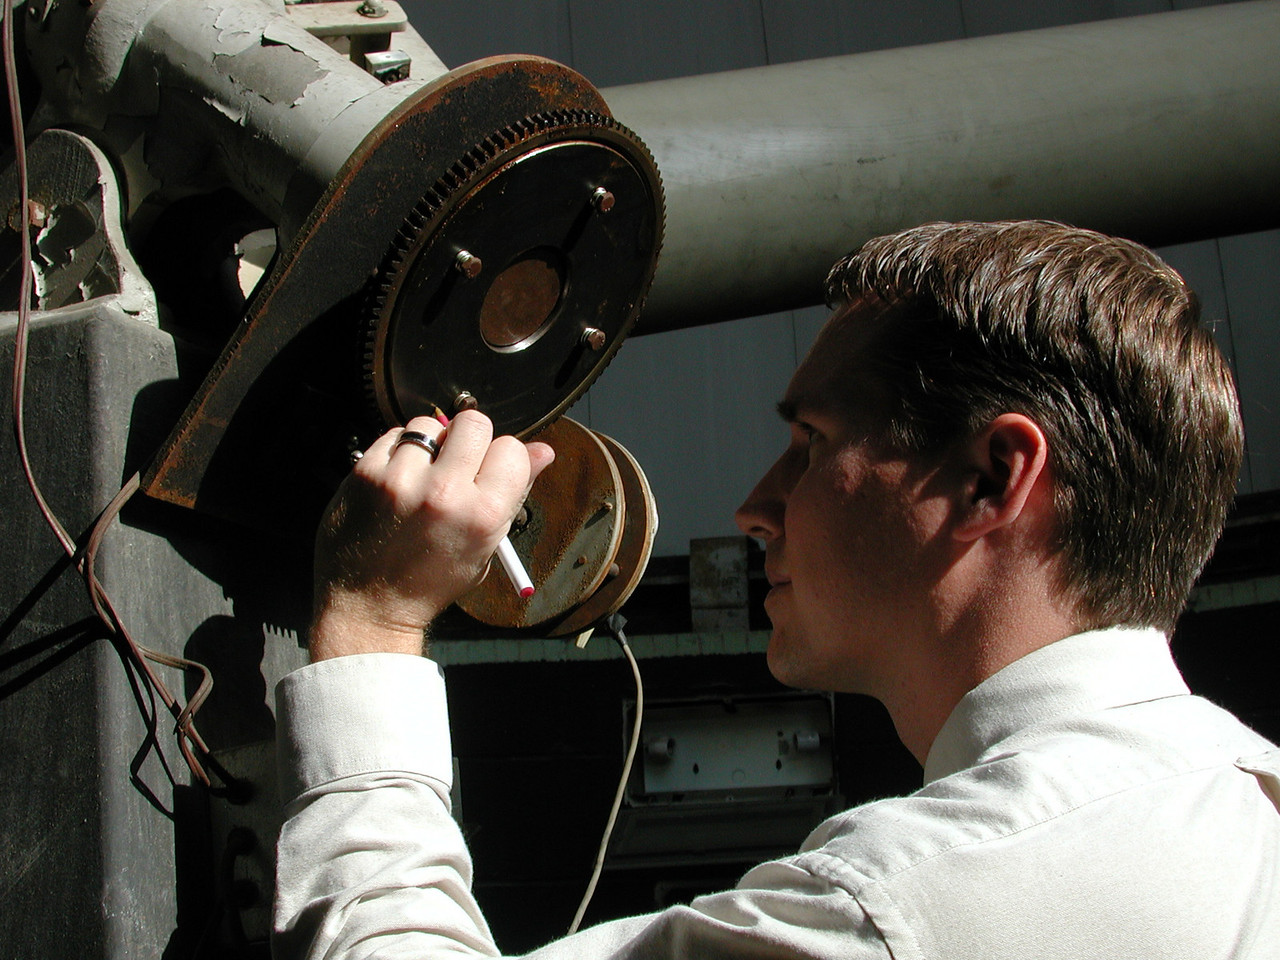 Here Jayson marks the gears to ensure clock drive is working properly.